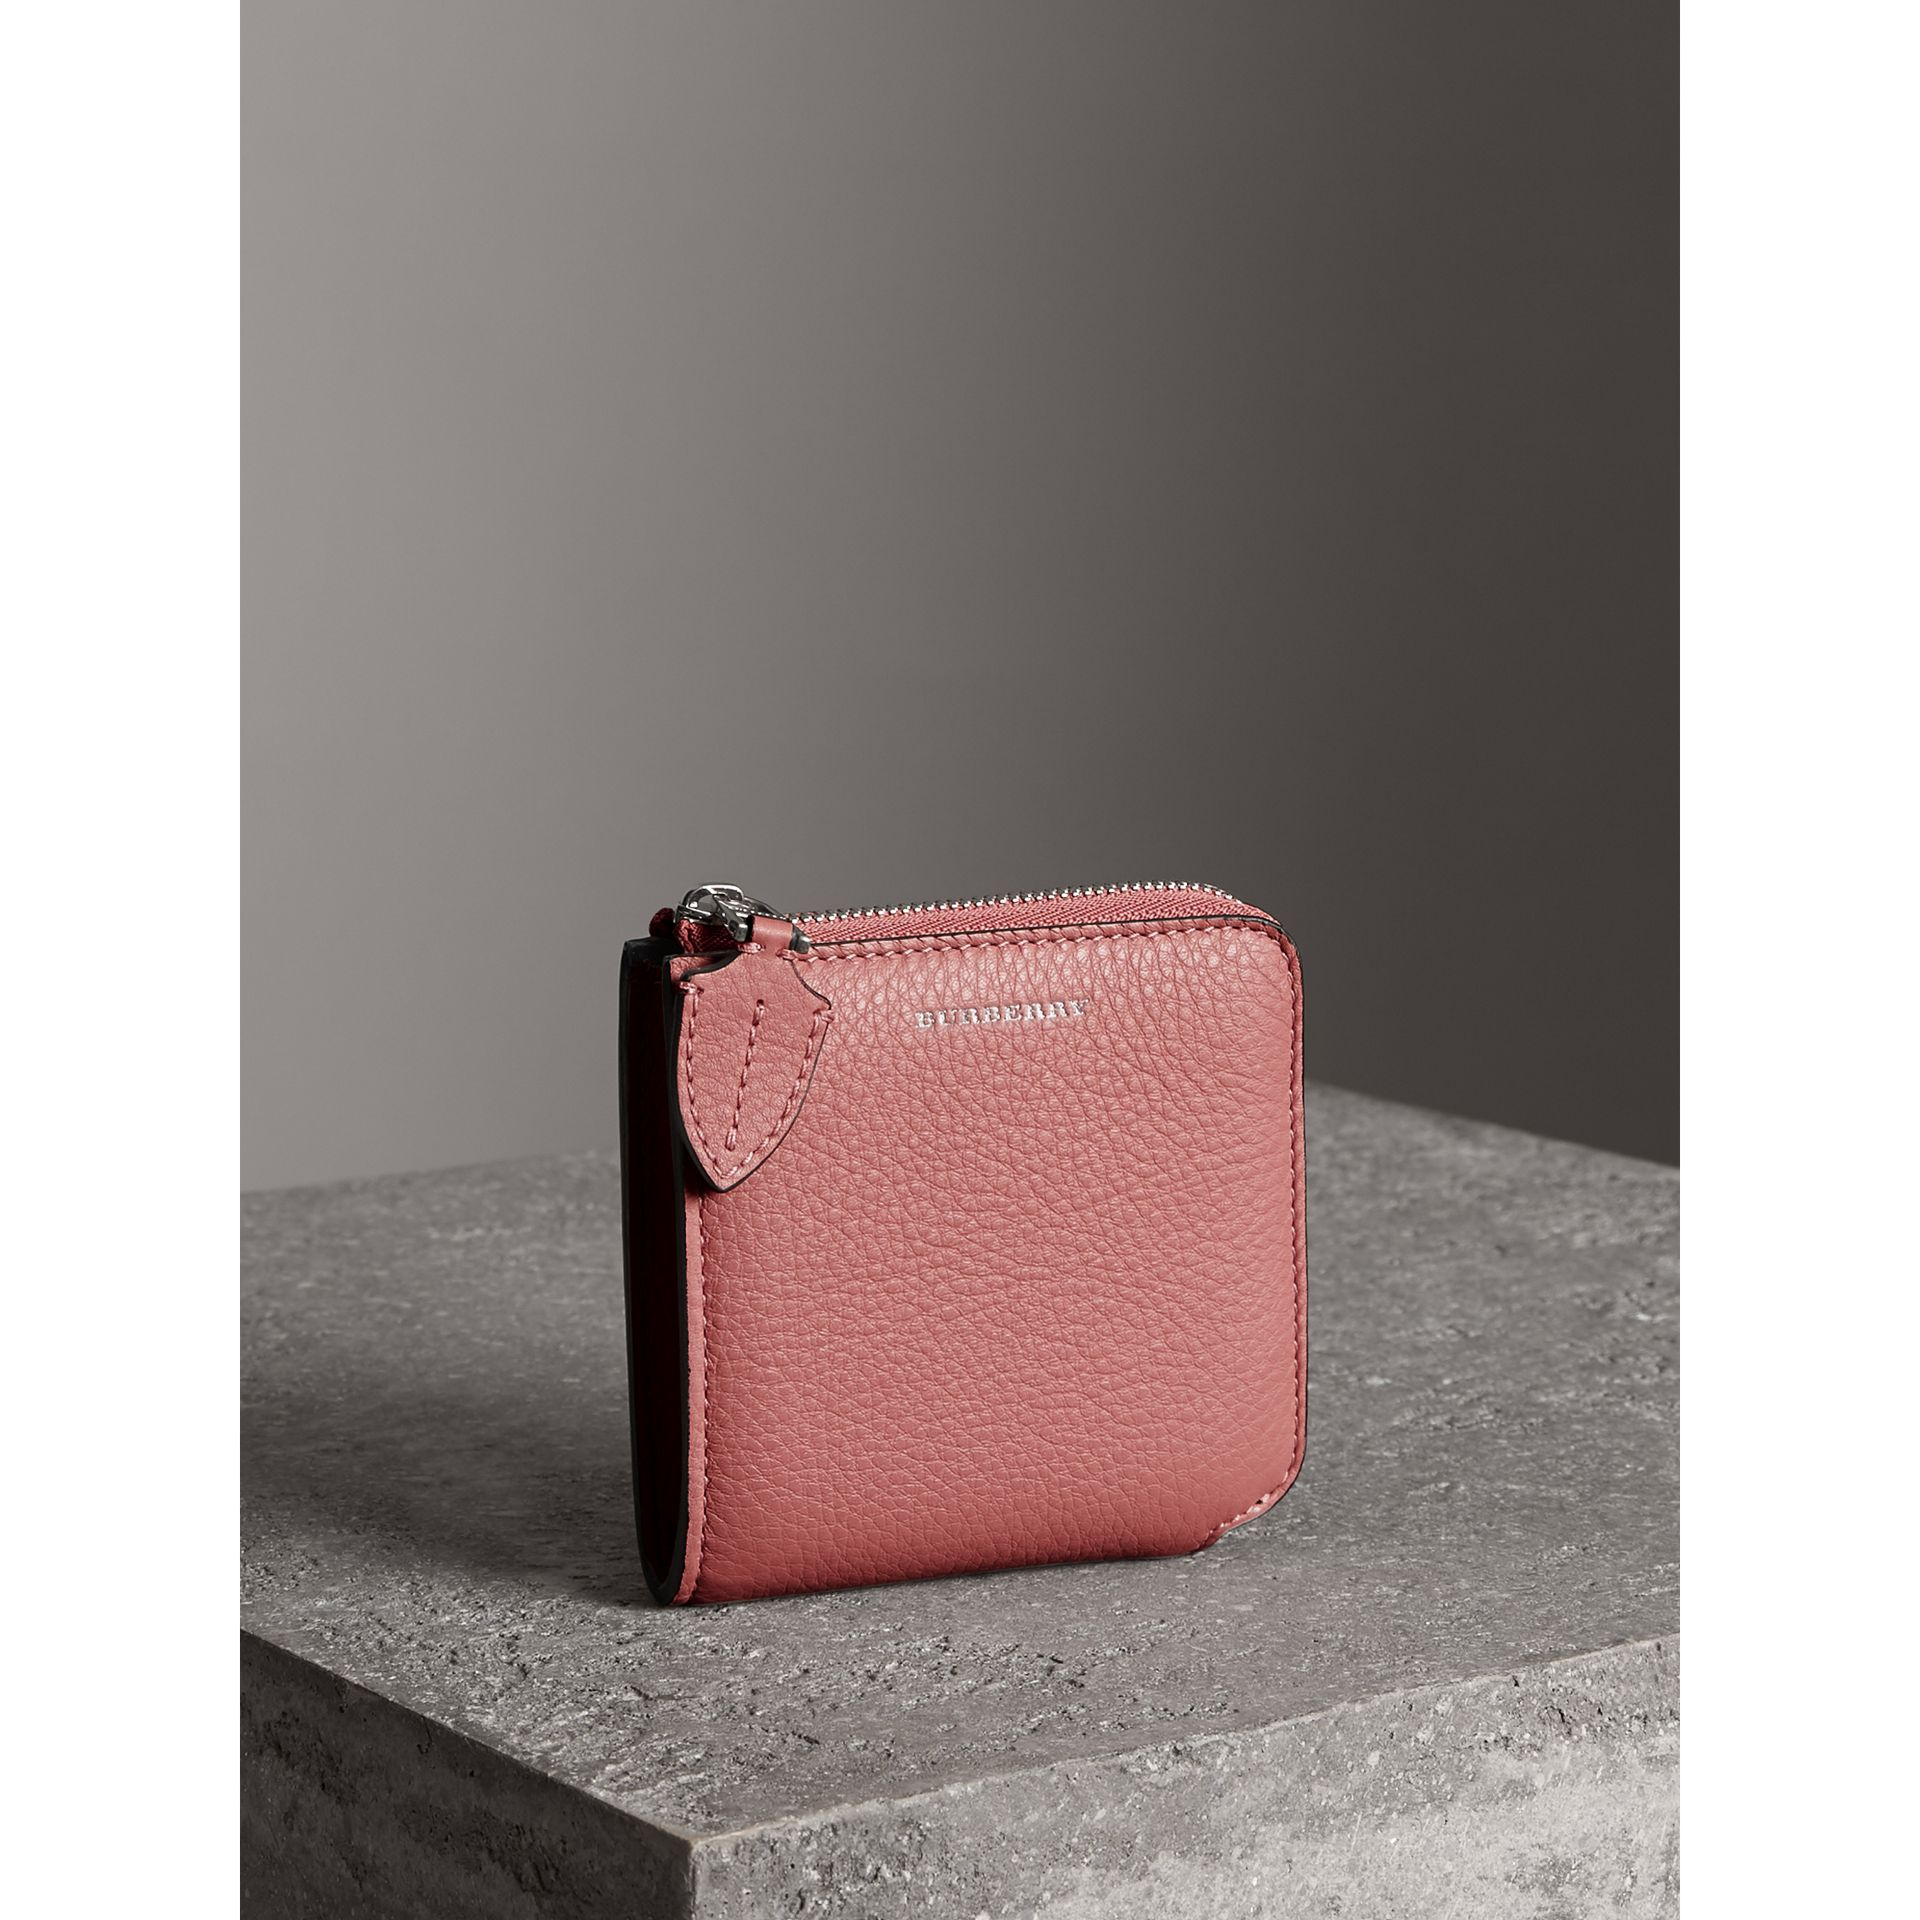 Grainy Leather Square Ziparound Wallet in Dusty Rose - Women | Burberry Singapore - gallery image 4